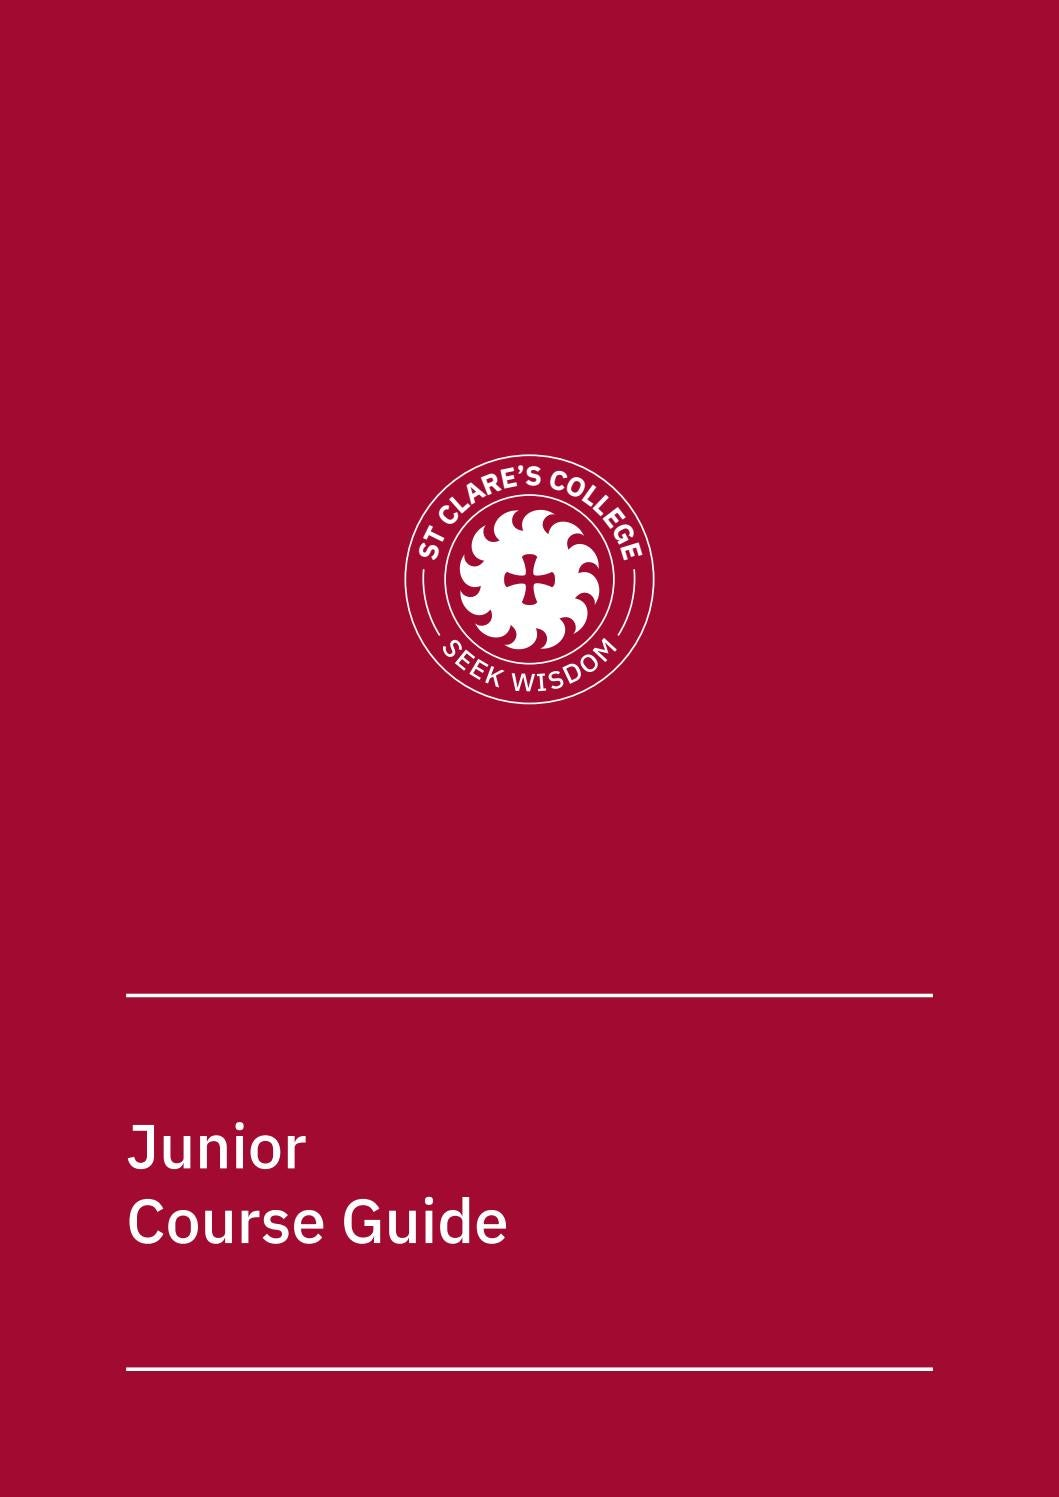 Junior Course Guide